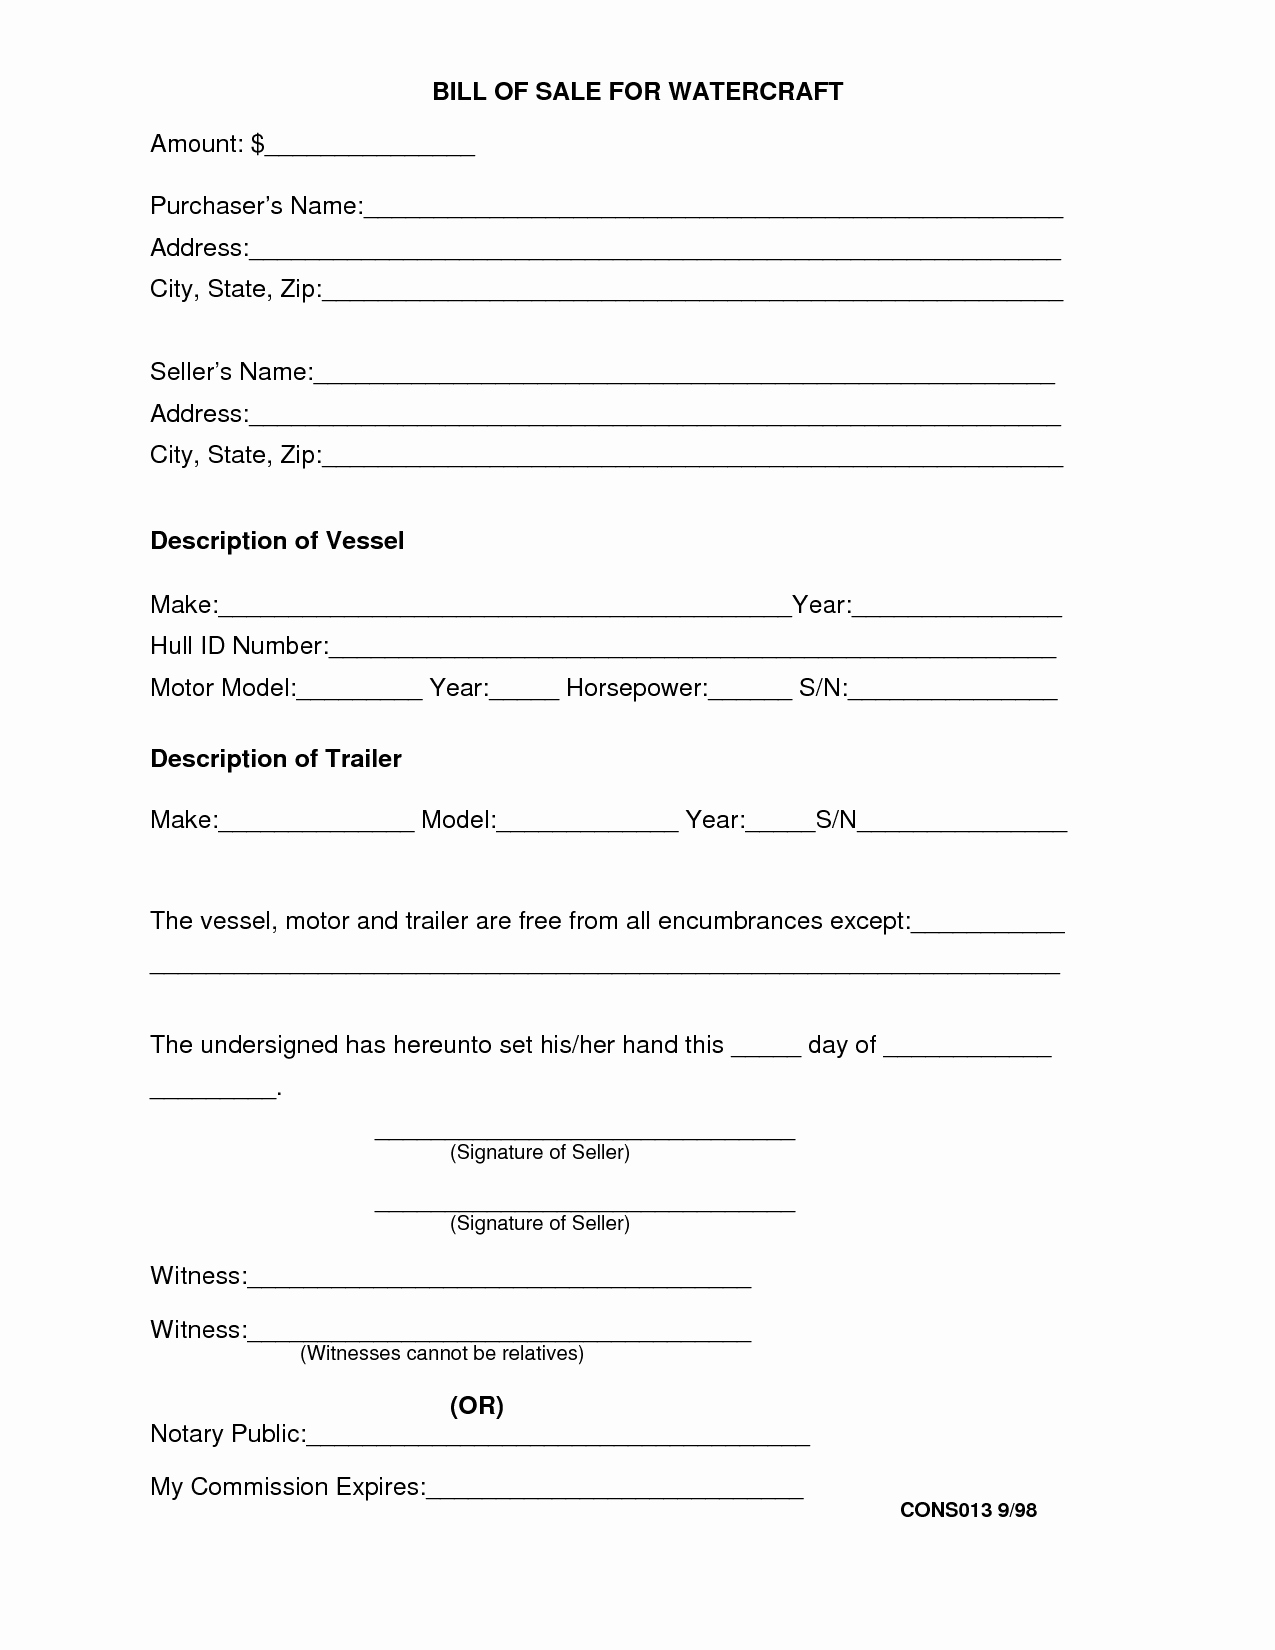 travel trailer bill of sale form